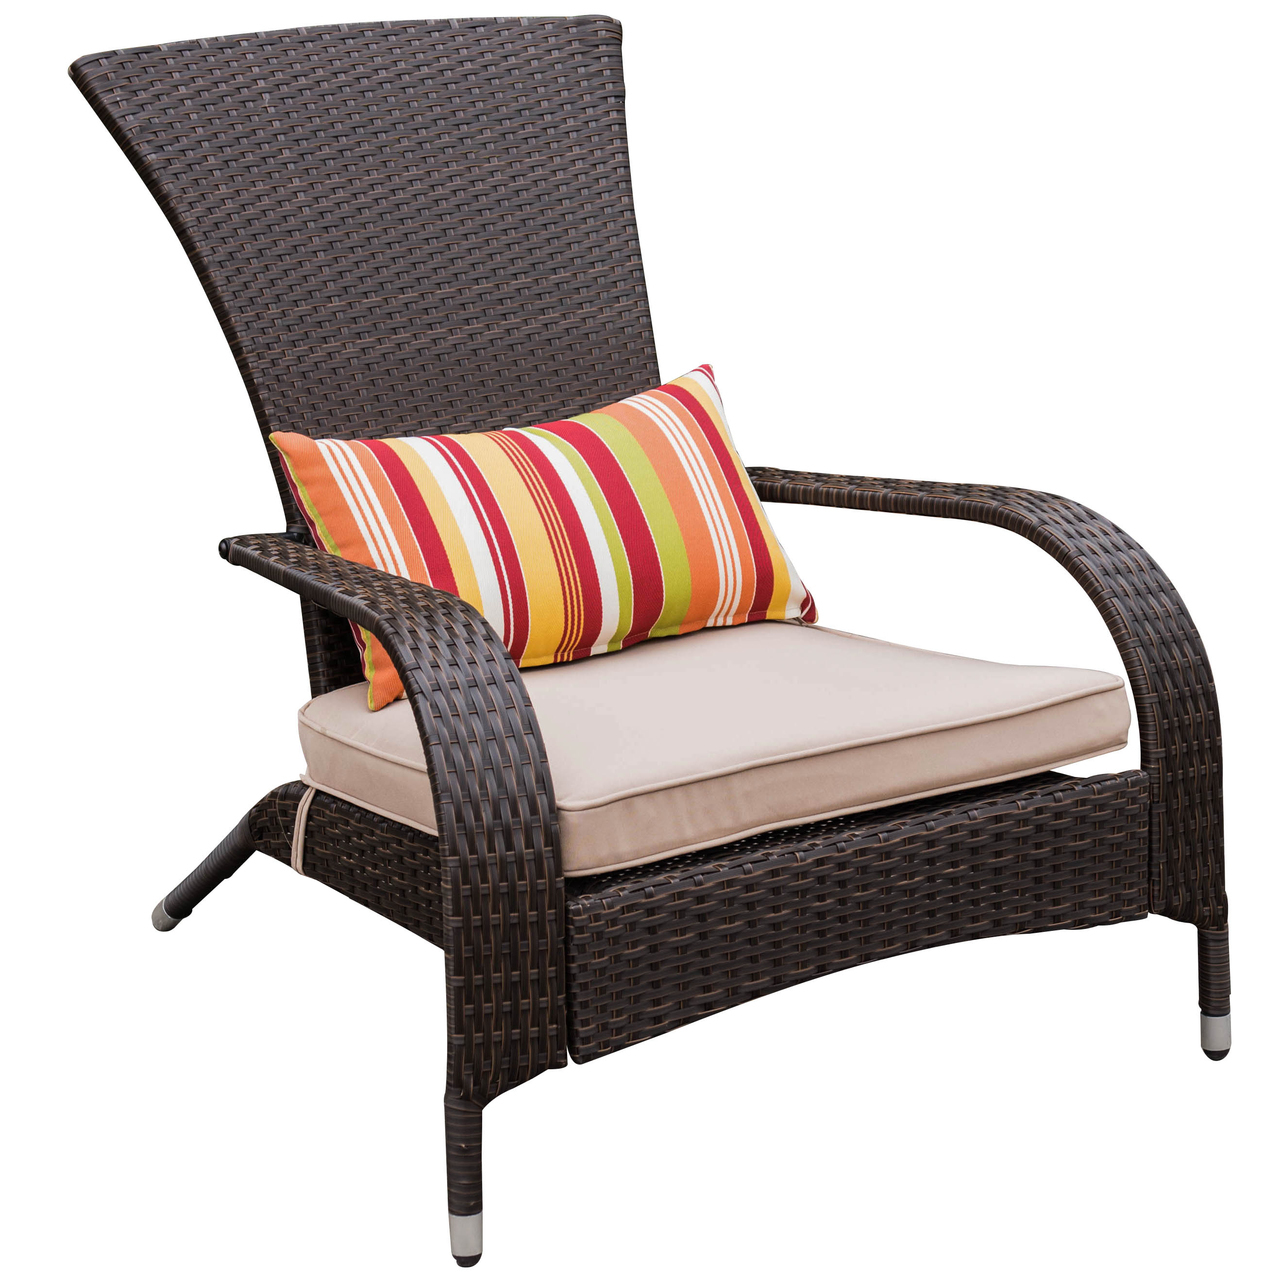 Awesome Deluxe Wicker Adirondack Chair Outdoor Patio Yard Furniture All Weather  With Cushion And Pillow